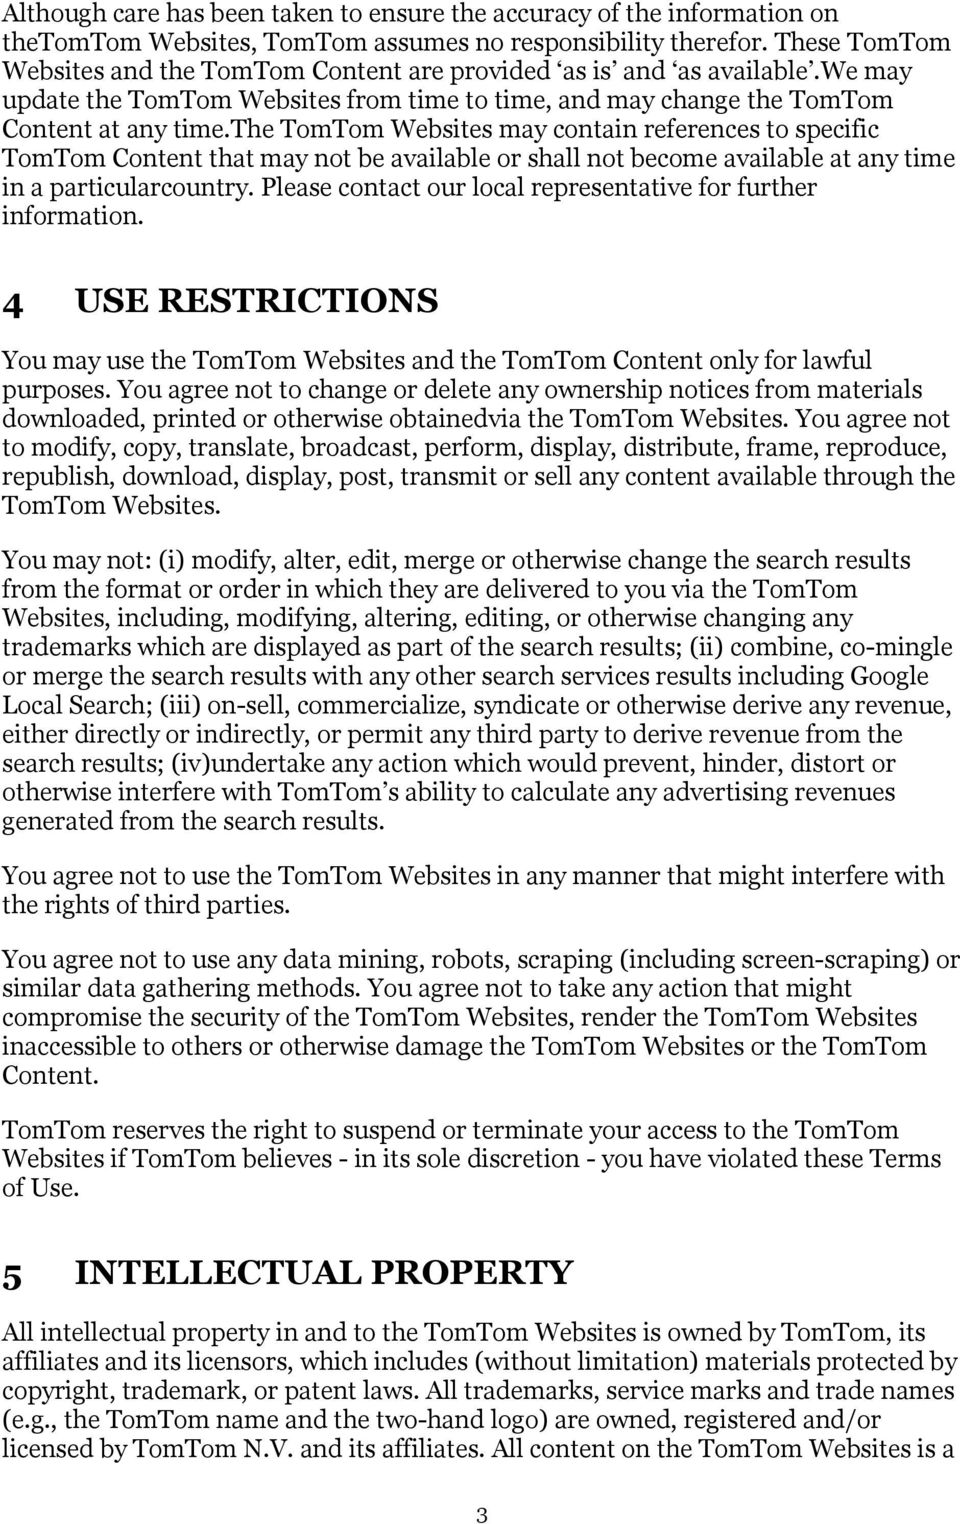 the TomTom Websites may contain references to specific TomTom Content that may not be available or shall not become available at any time in a particularcountry.